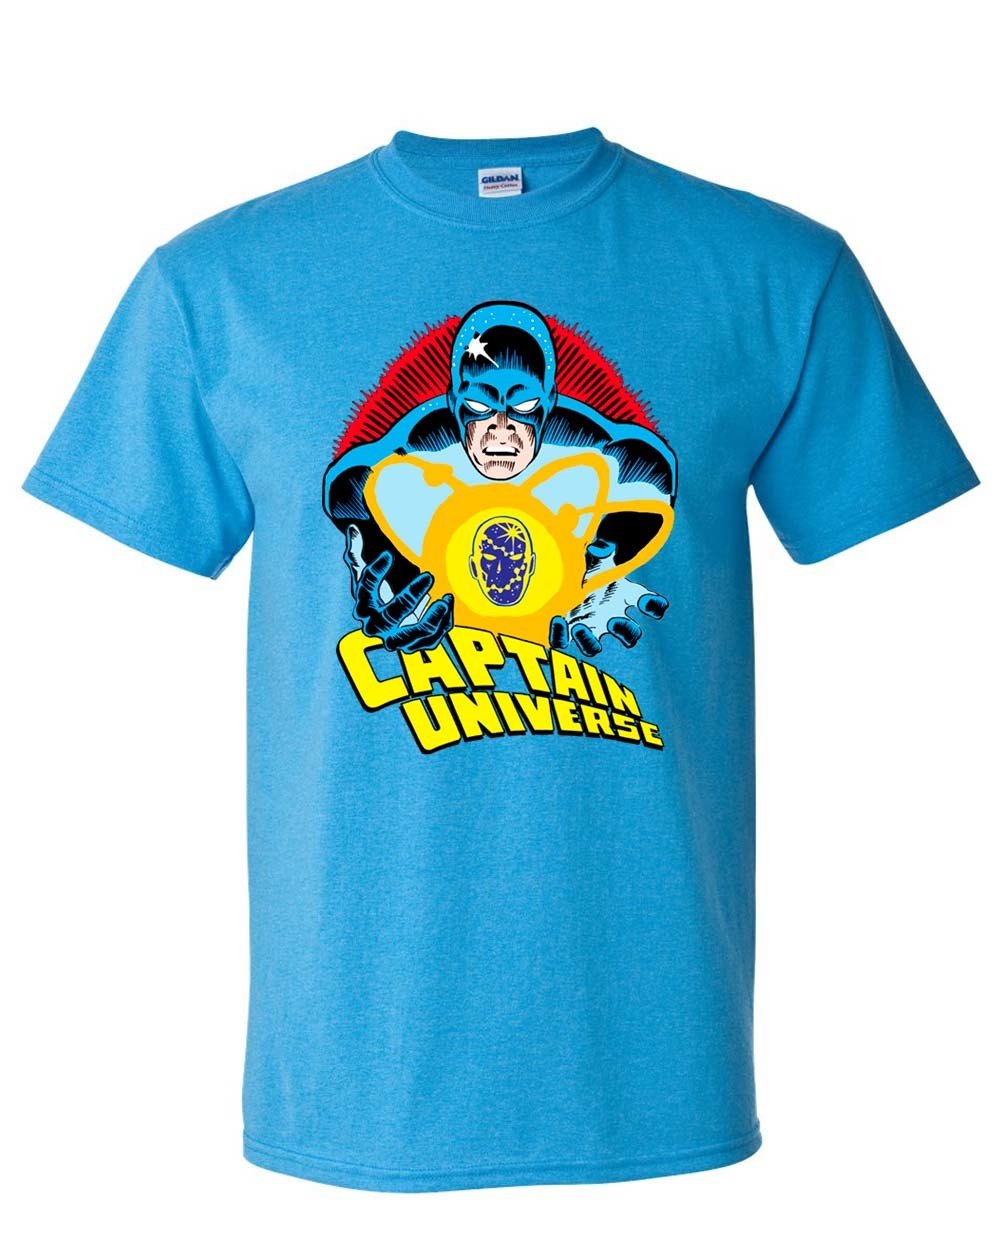 Ge geaphic tee avengers retro micronauts comic books vintage for sale online t shirt store dblue